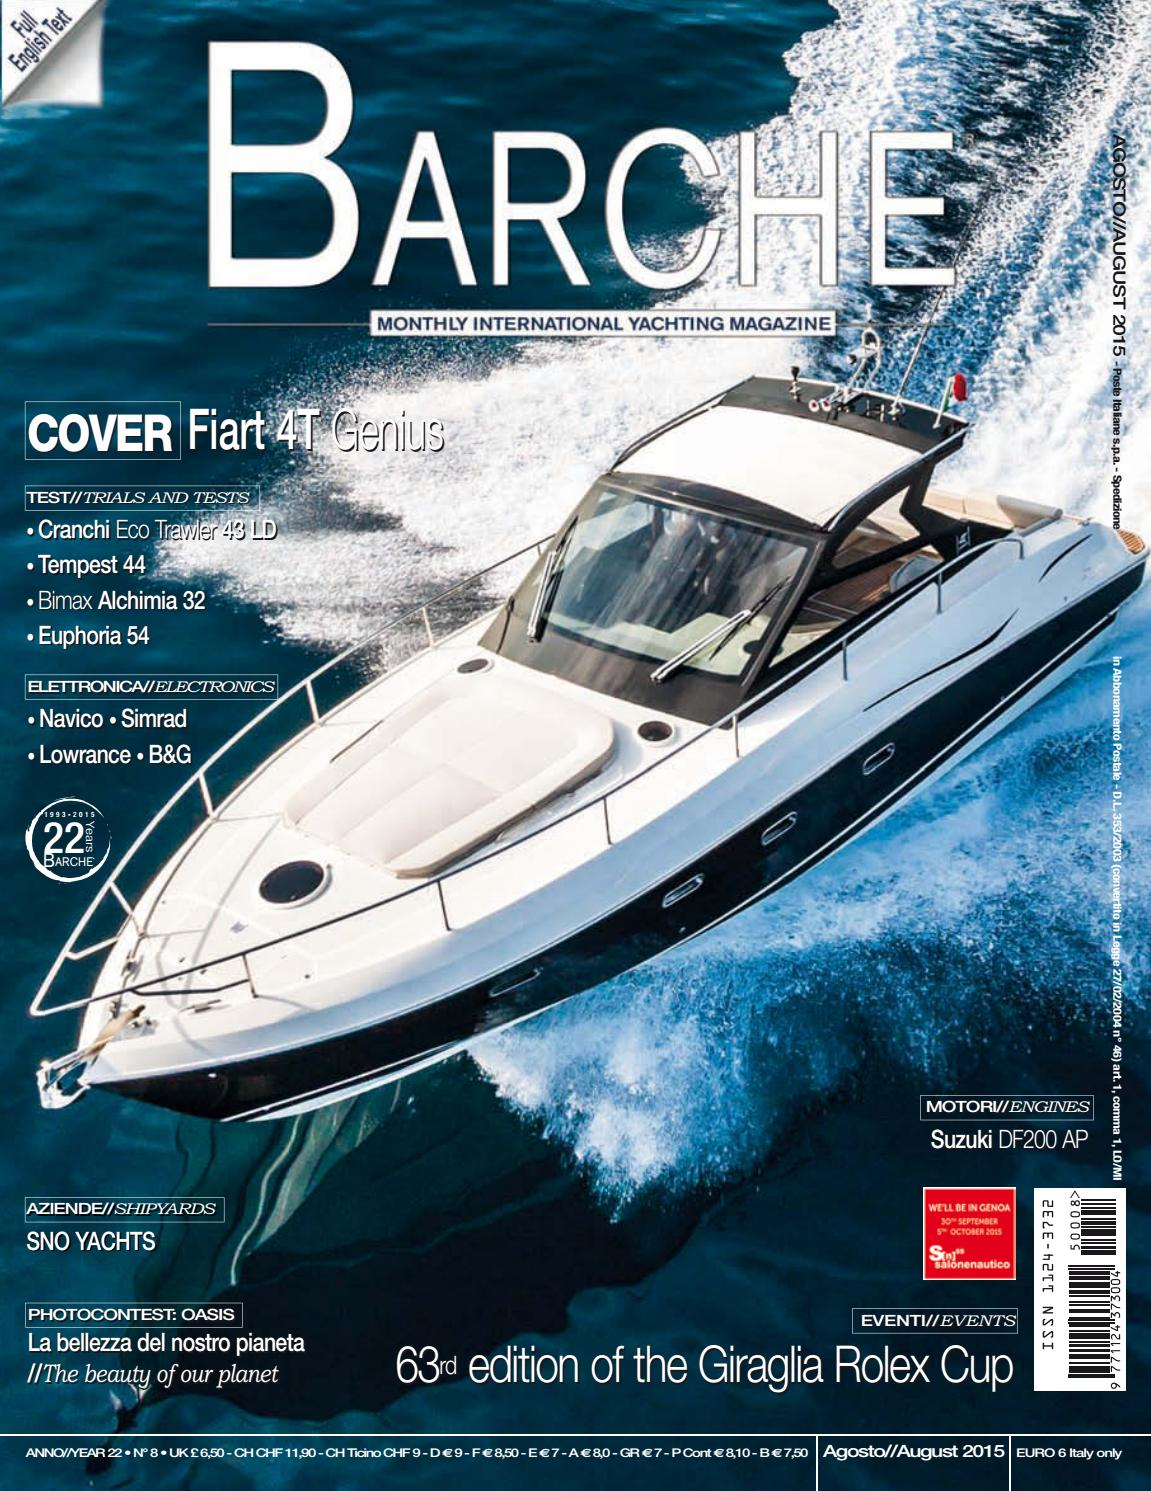 Barche AUGUST 2015 by INTERNATIONAL SEA PRESS SRL - BARCHE - issuu 6bbe677826d